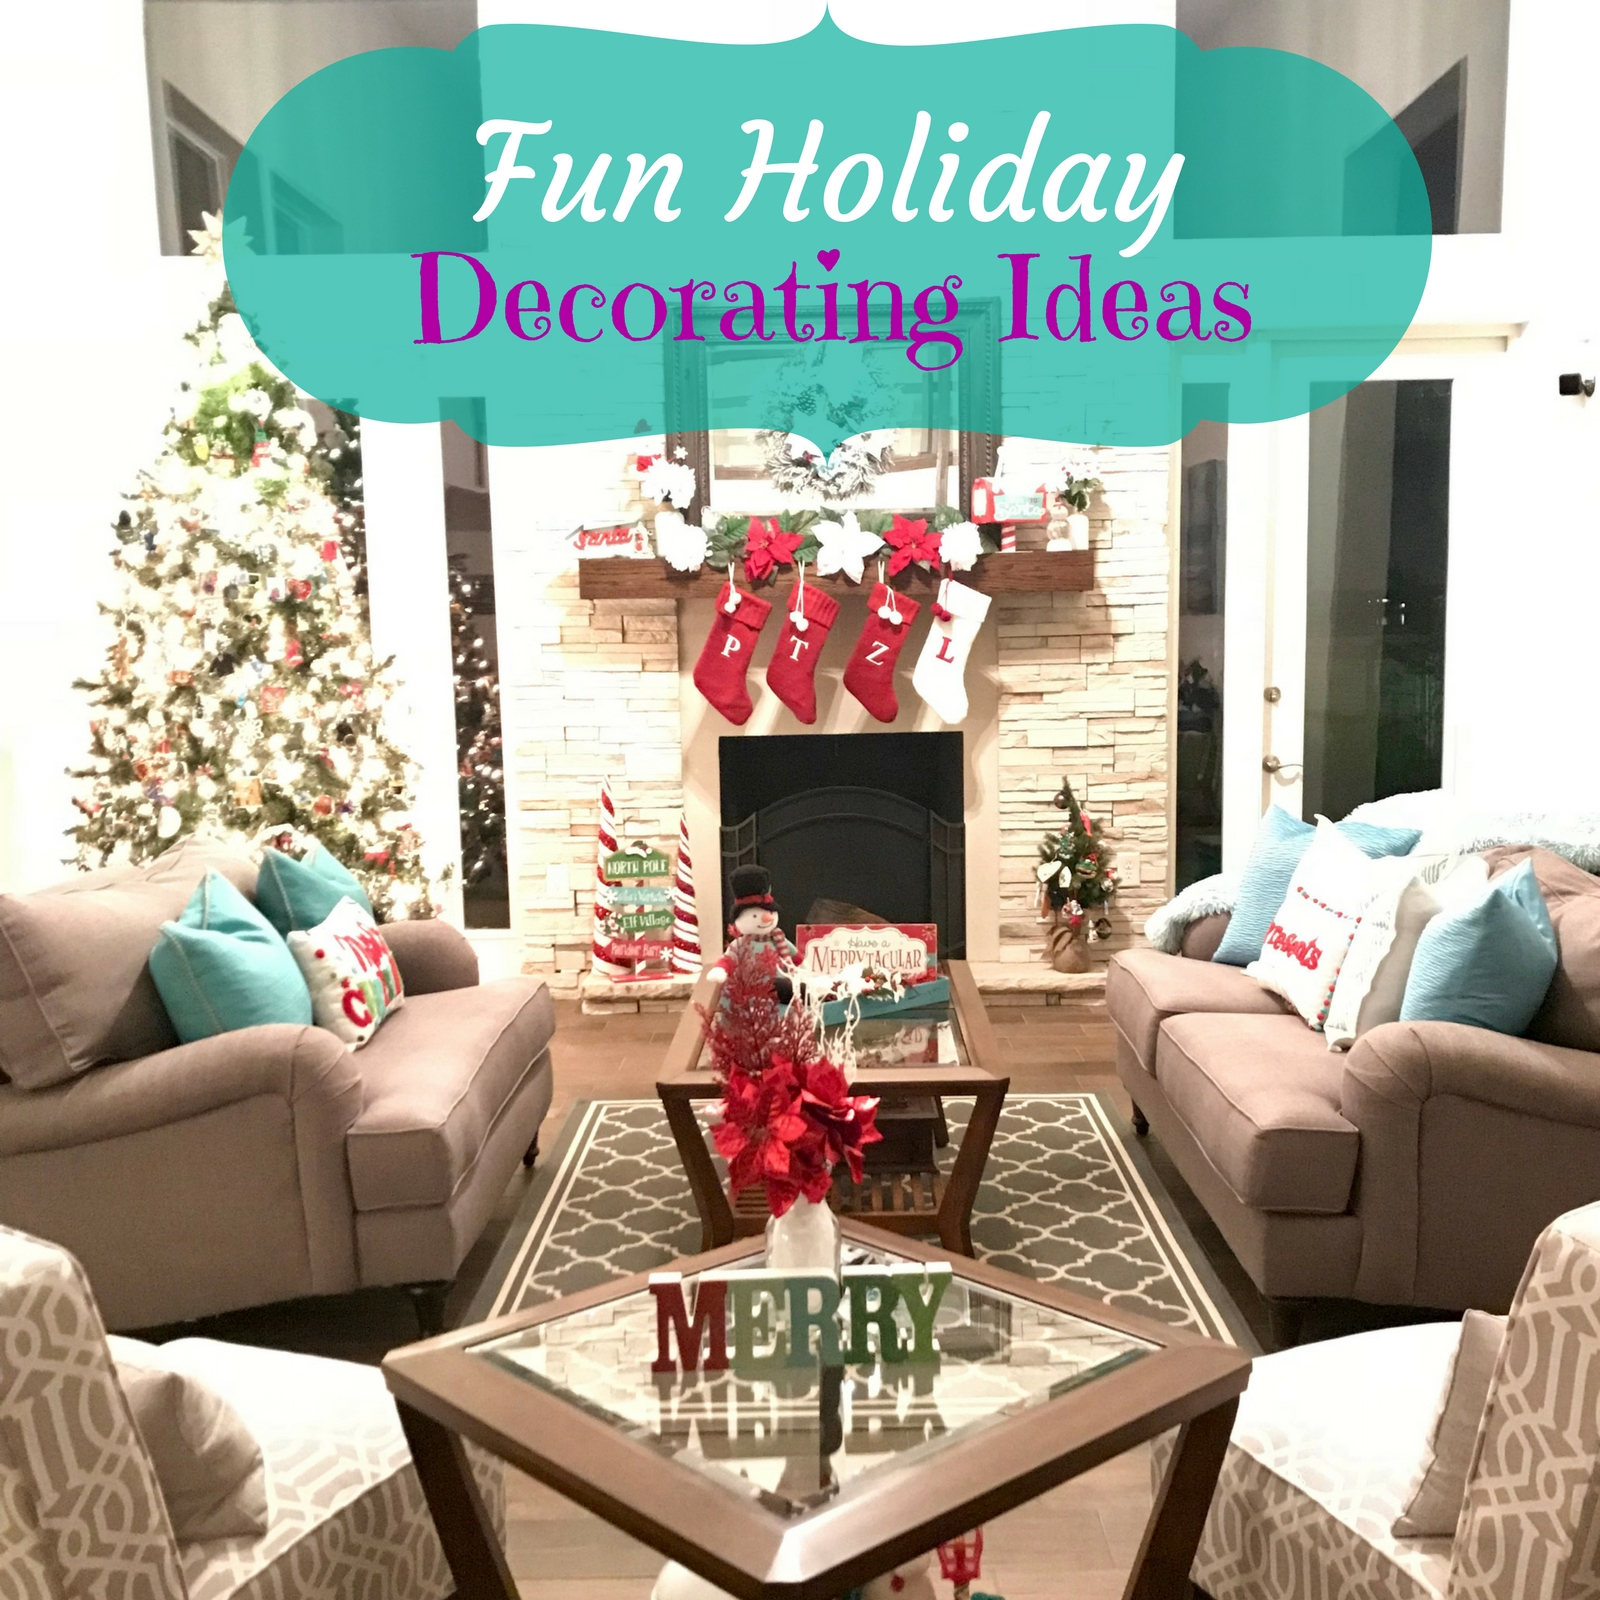 Fun Holiday Decorating Ideas